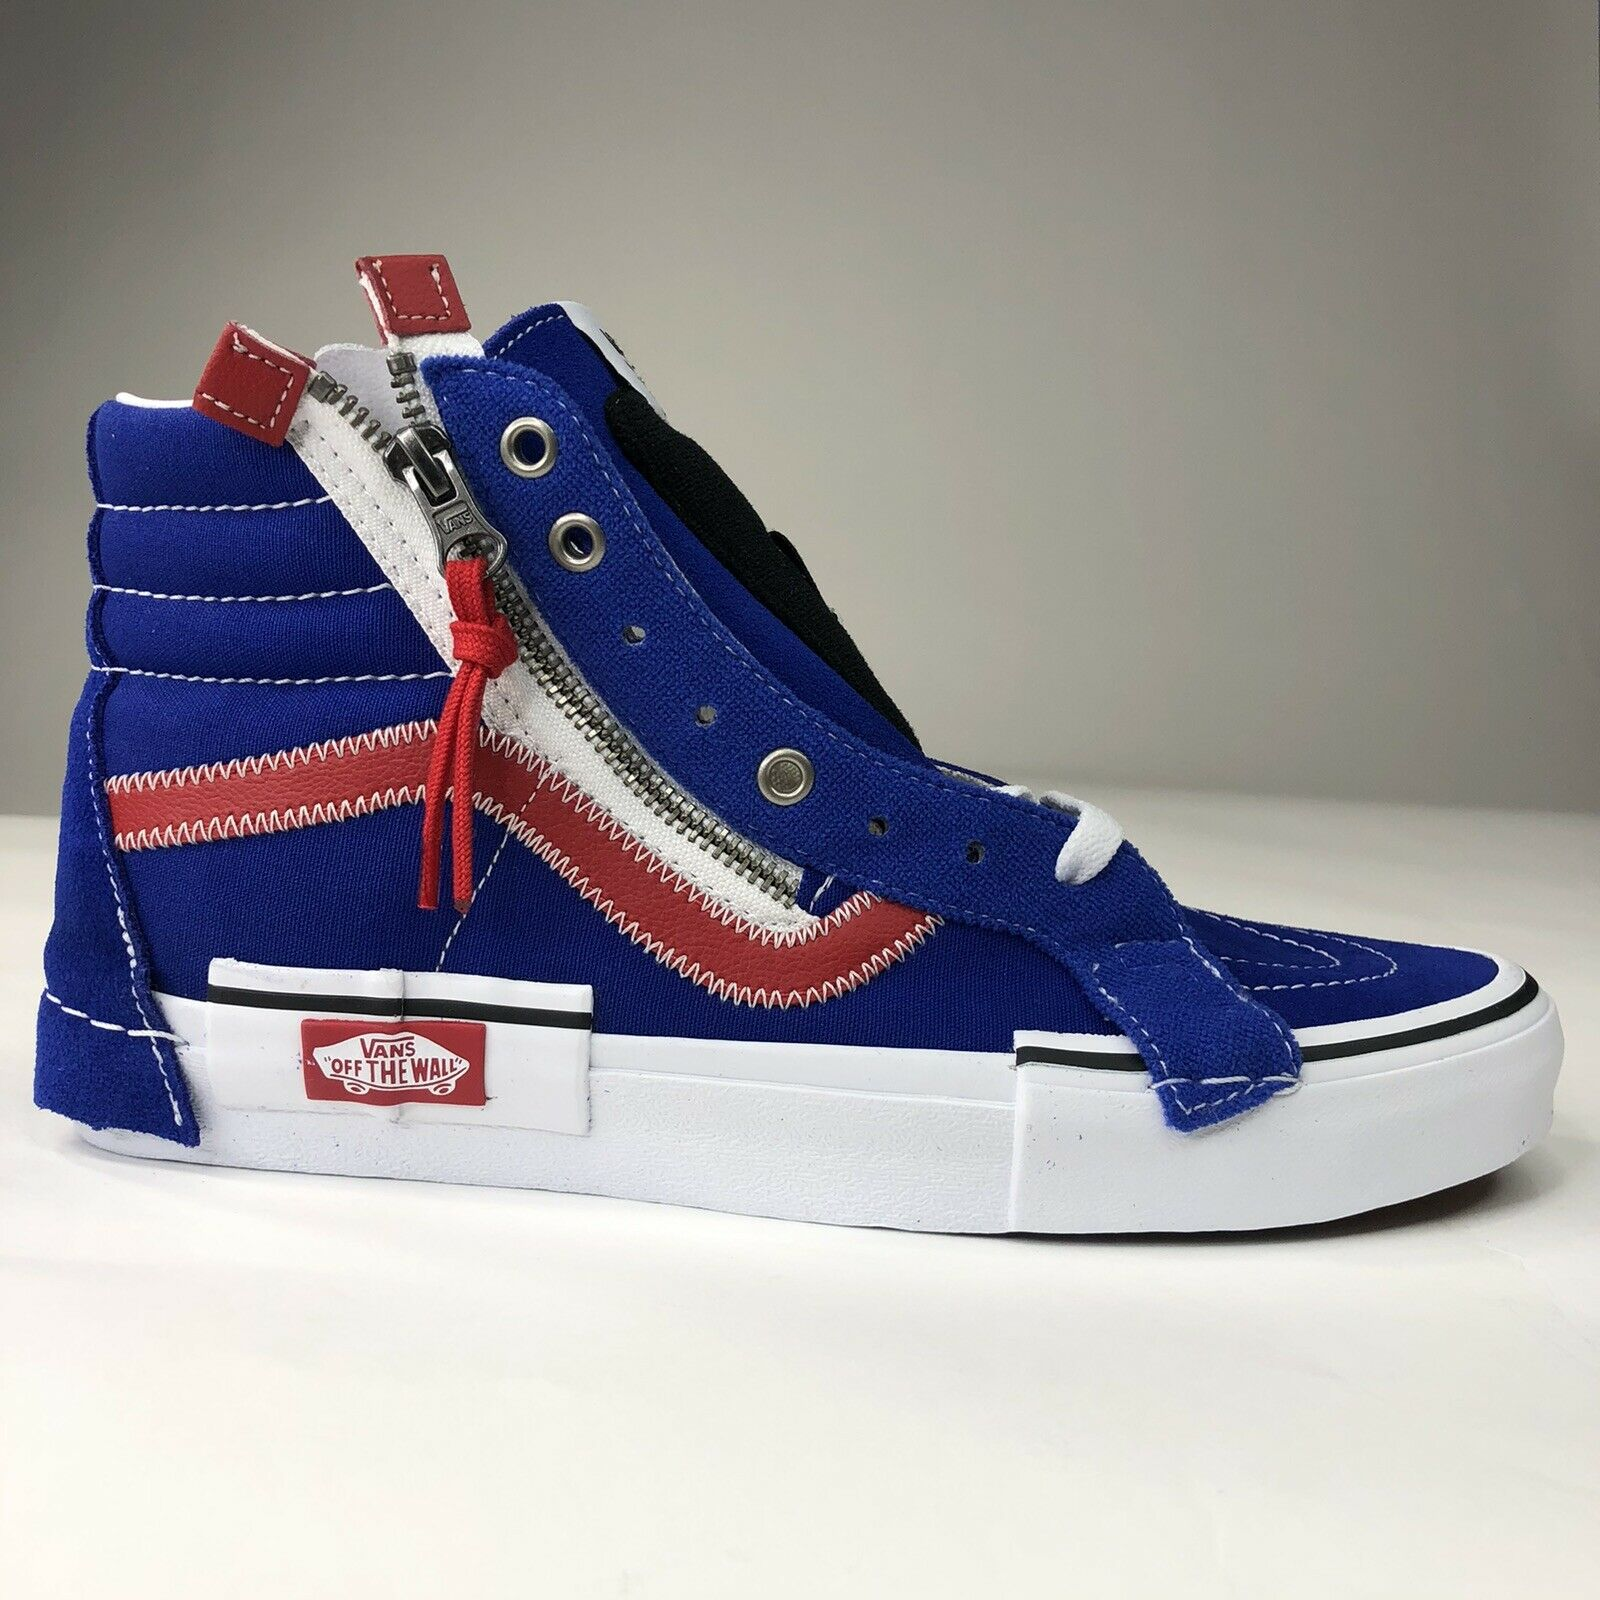 Vans Sk8 Hi Cap Surf The Web